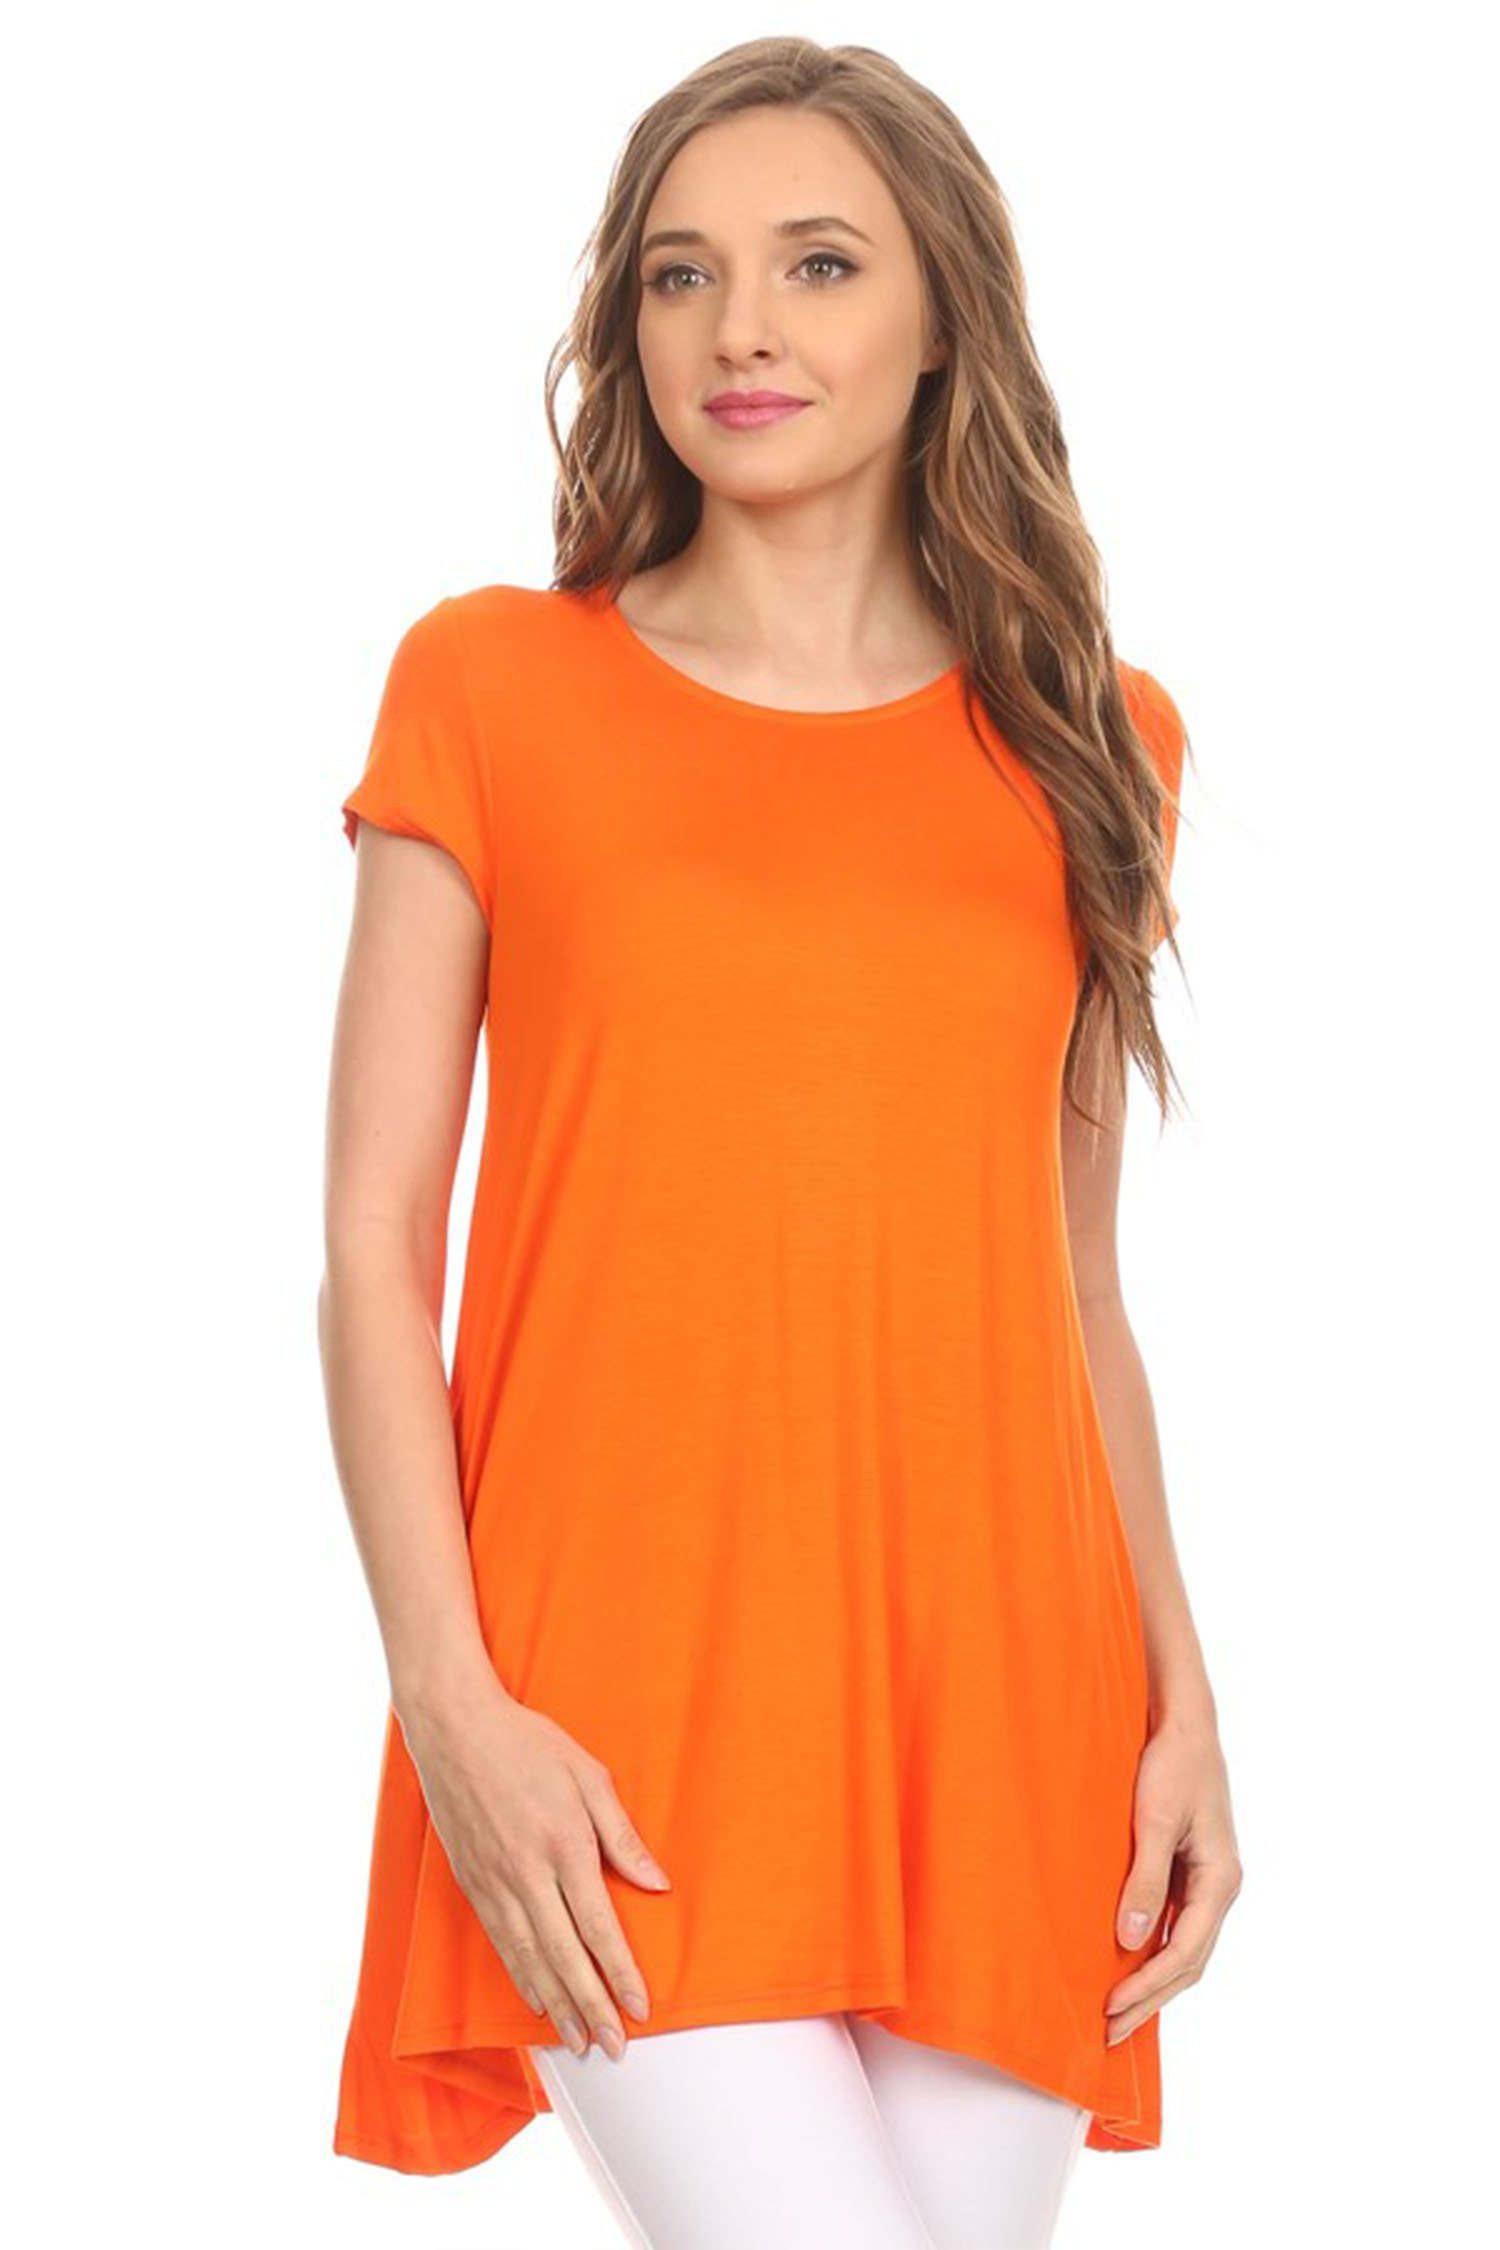 Short Sleeve Loose Fit T Shirt Tunic Top with pocket/Made in USA. Orange S